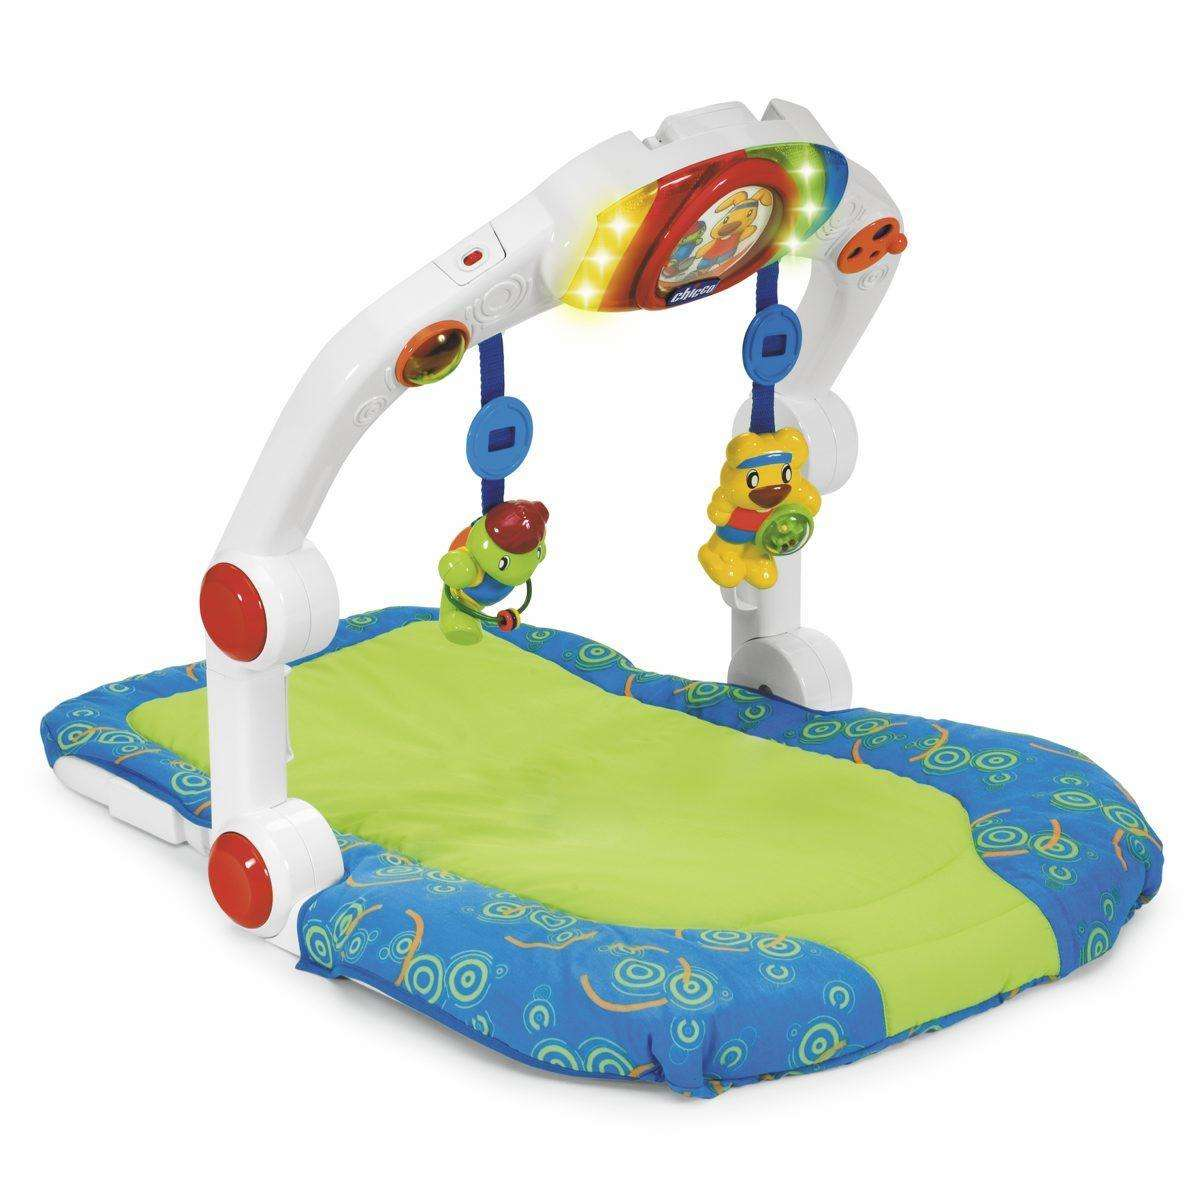 Tappeti Da Palestra Baby Trainer Ergo Gym Giochi Chicco It